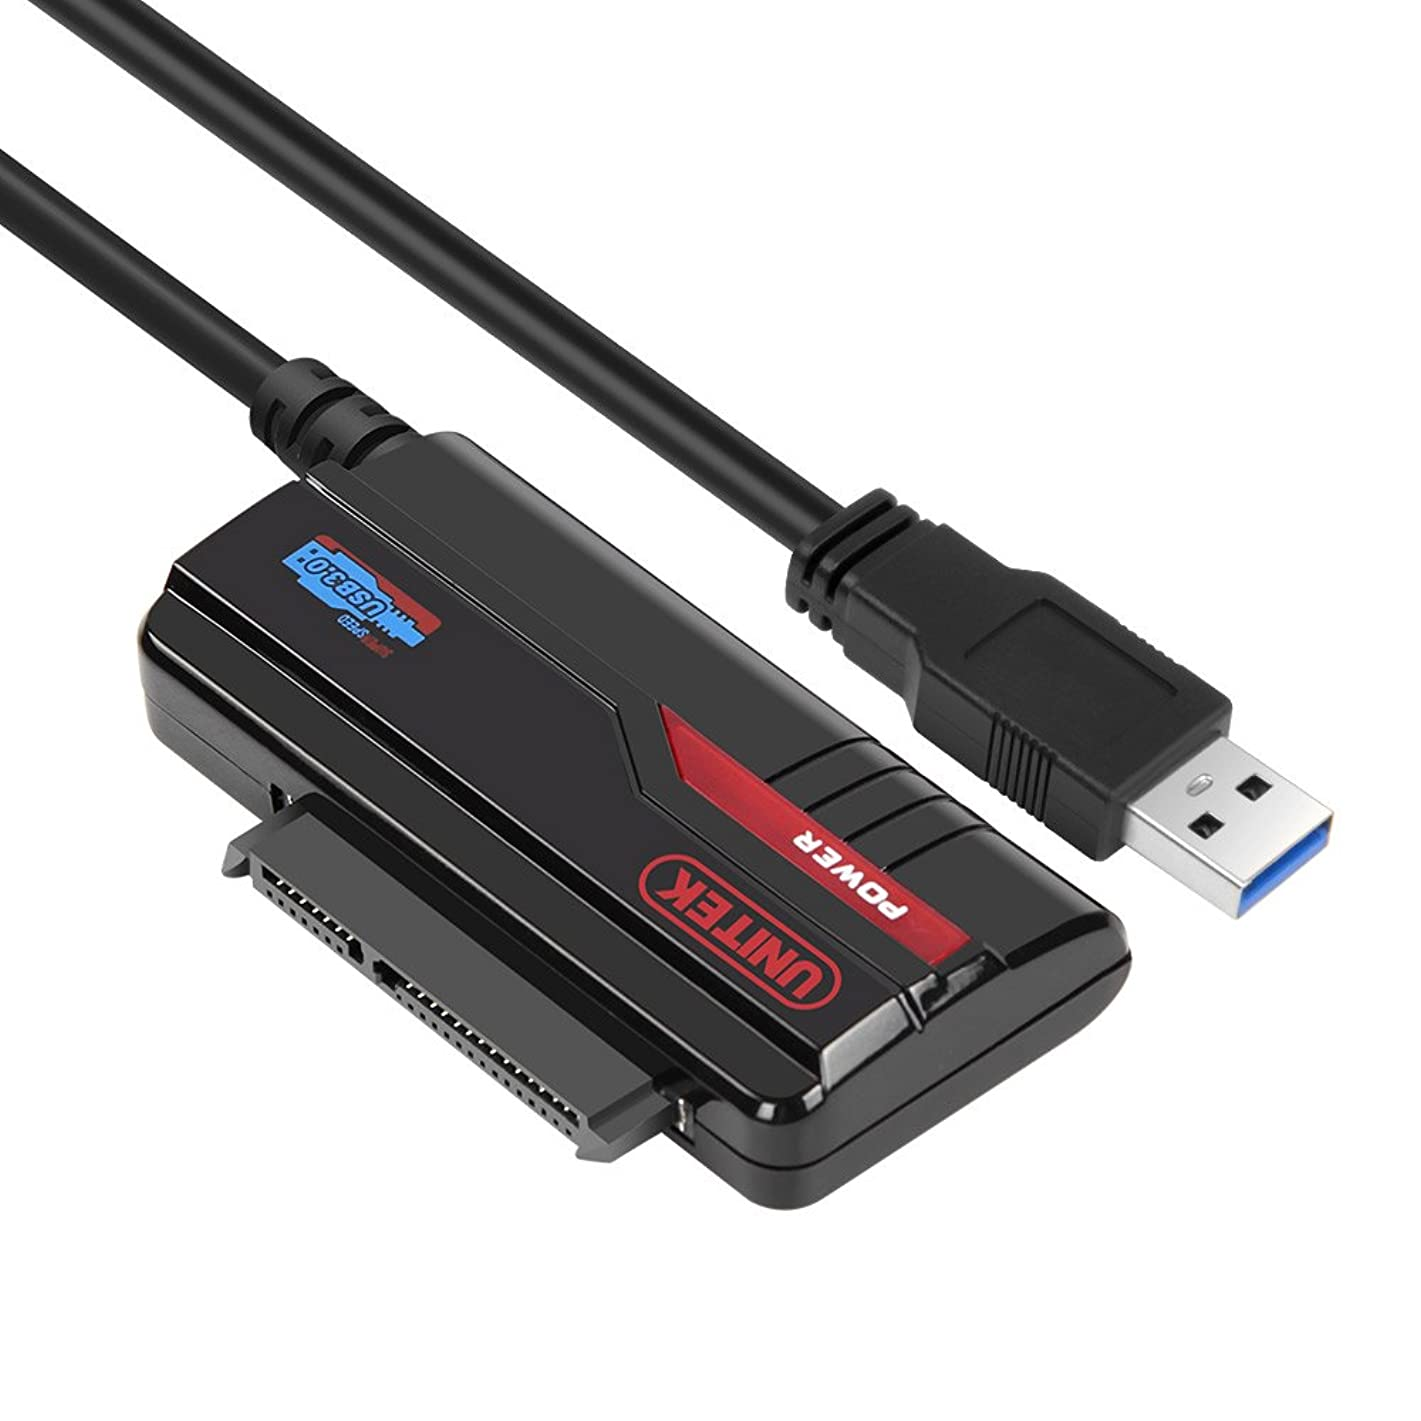 Unitek USB 3.0 to SSD/HDD / 2.5-Inch SATA III Hard Drive Adapter Cable- External Converter for SATA III Hard Drives, Support UASP [Power Adapter Not Included]